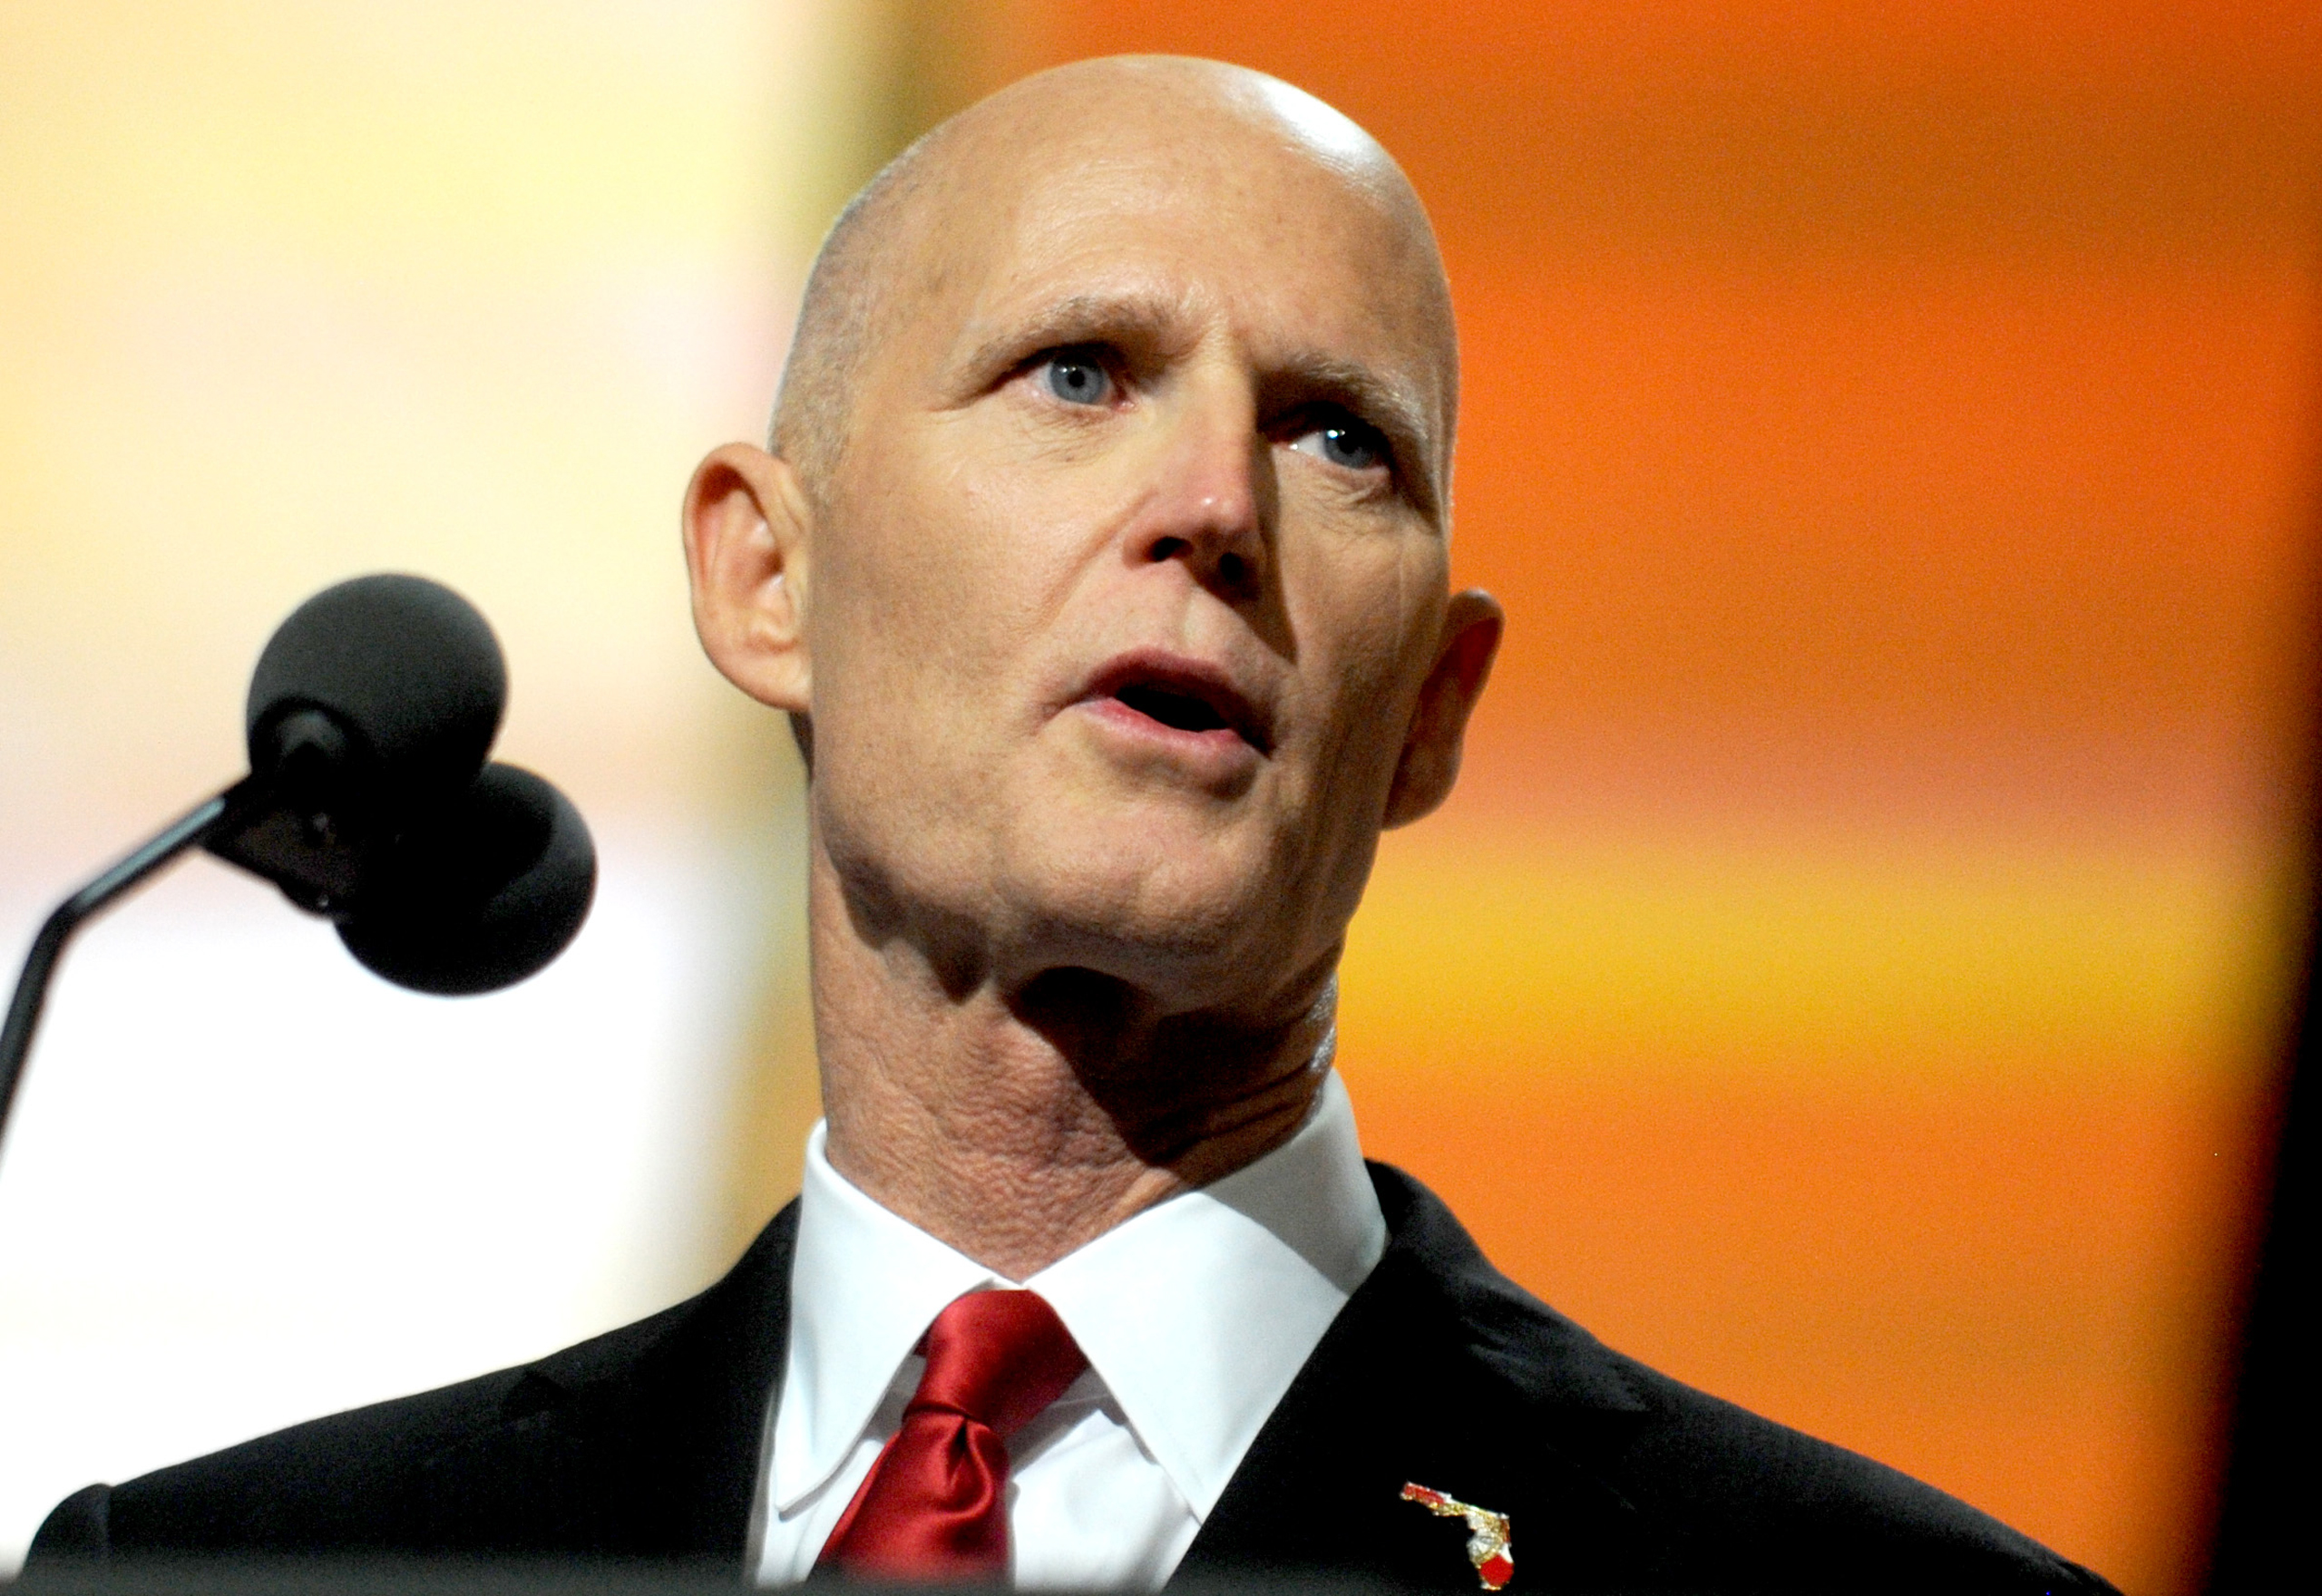 Florida Governor Rick Scott delivers a speech on the third day of the Republican National Convention at the Quicken Loans Arena in Cleveland, Oh.,  on July 20, 2016.